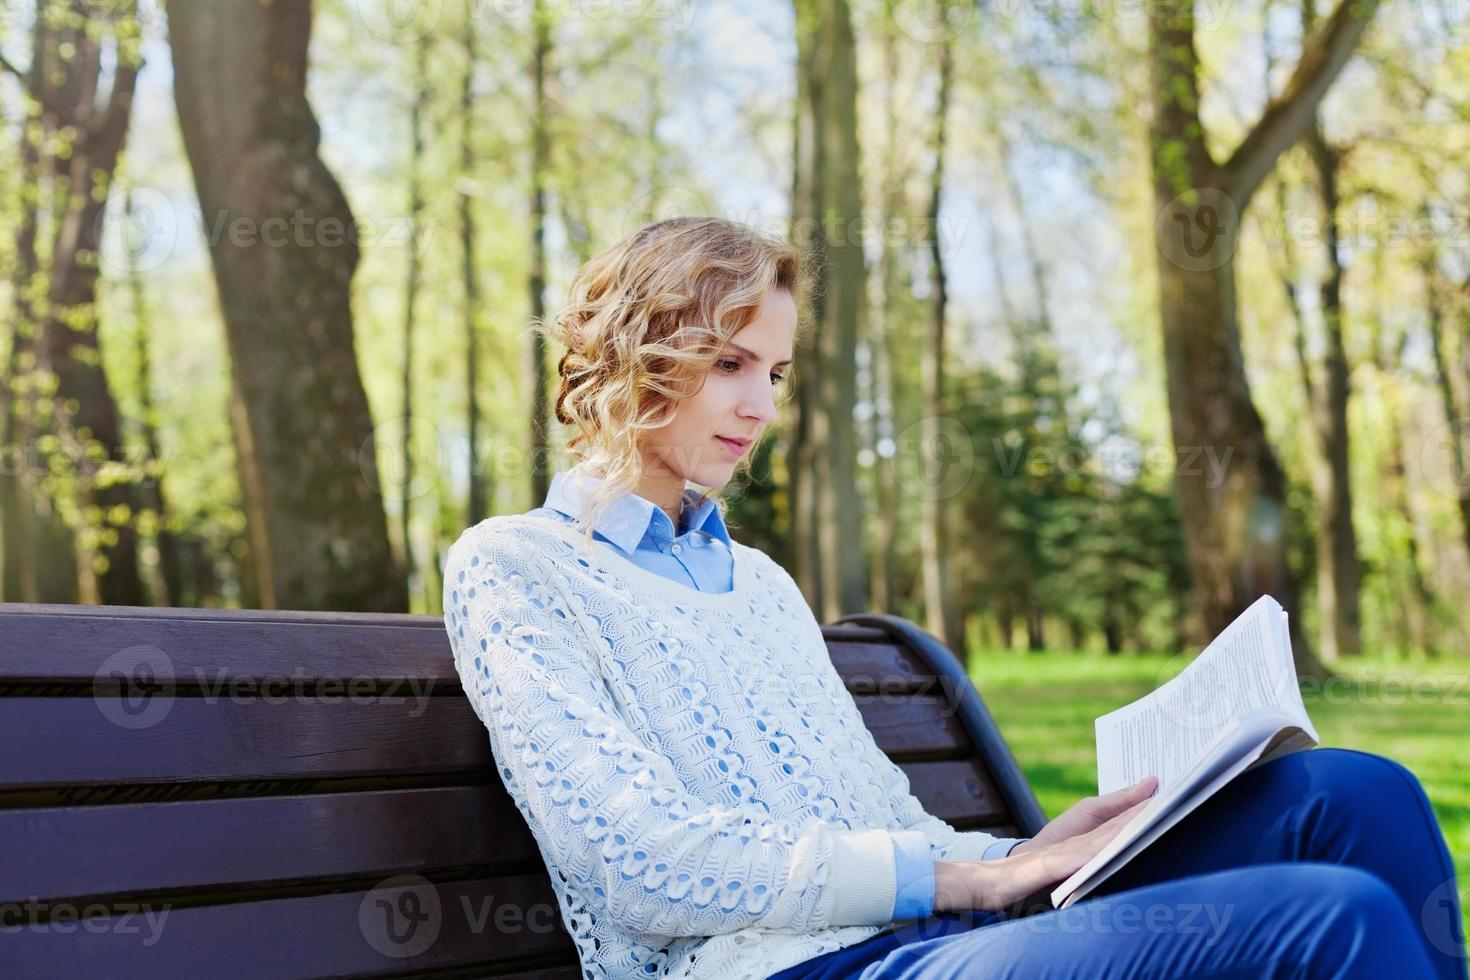 student girl reading book in park, science and education concept photo